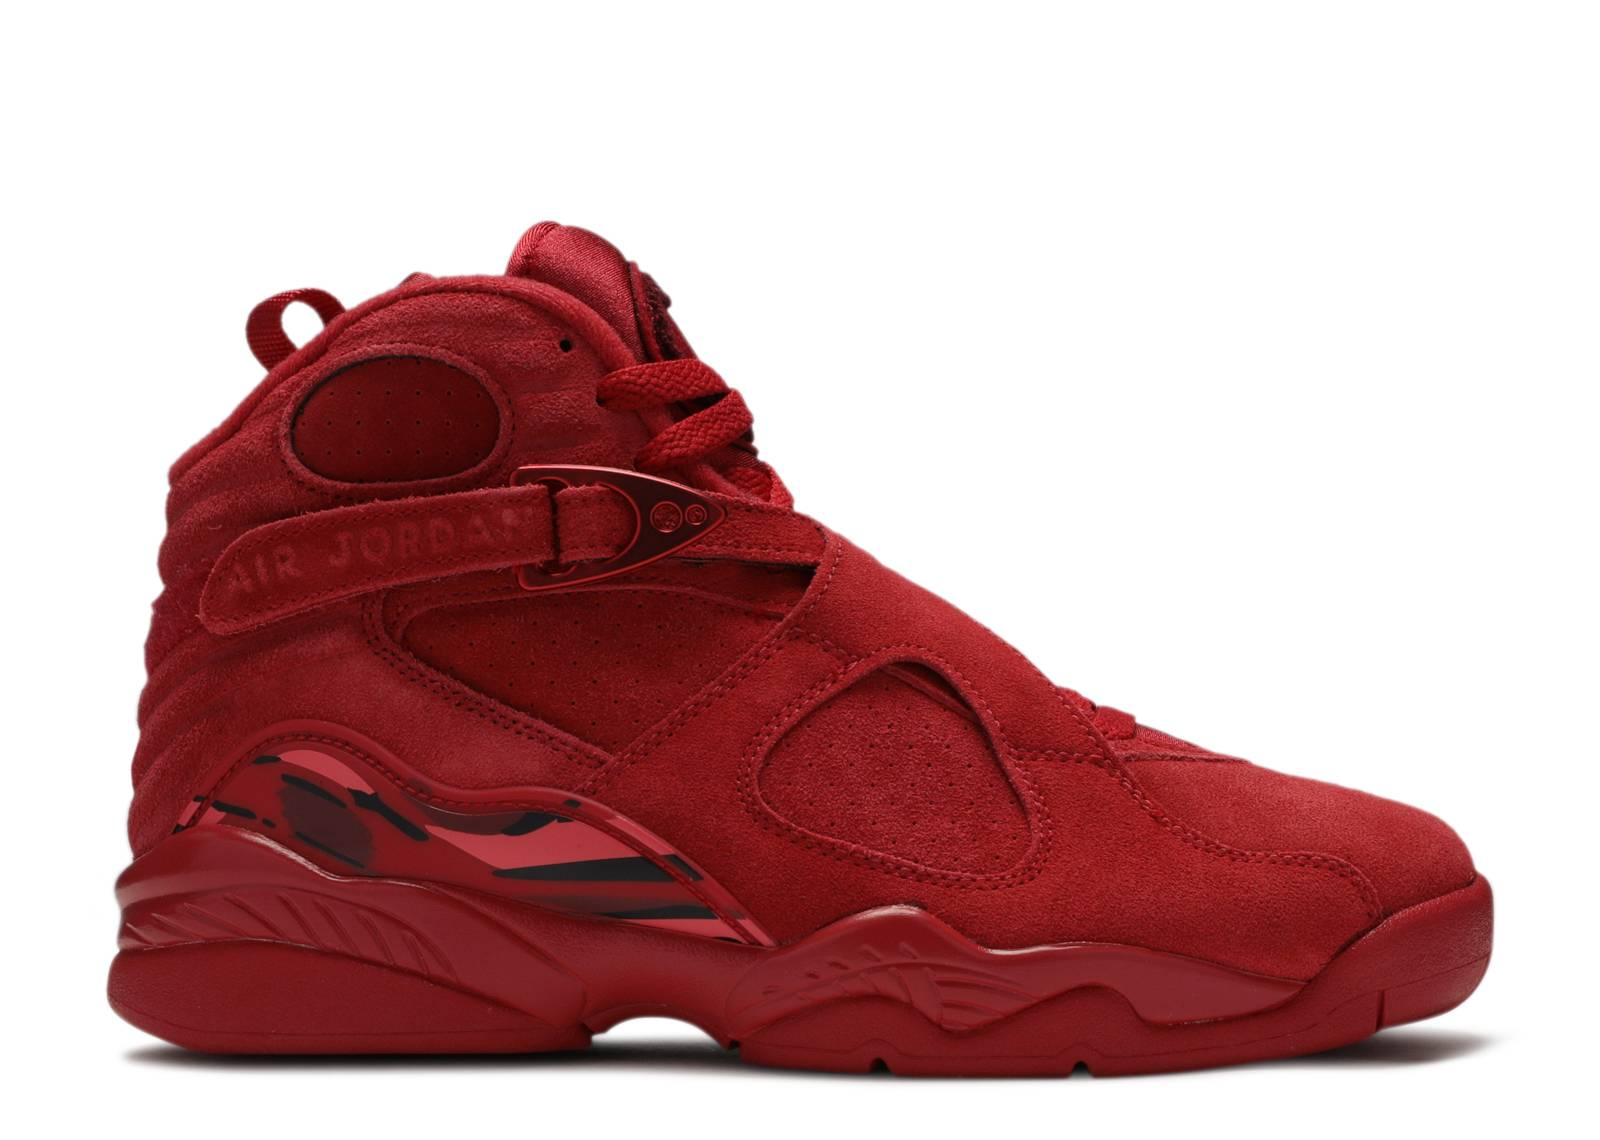 Wmns Air Jordan 8 Vday Valentines Day Air Jordan Aq2449 614